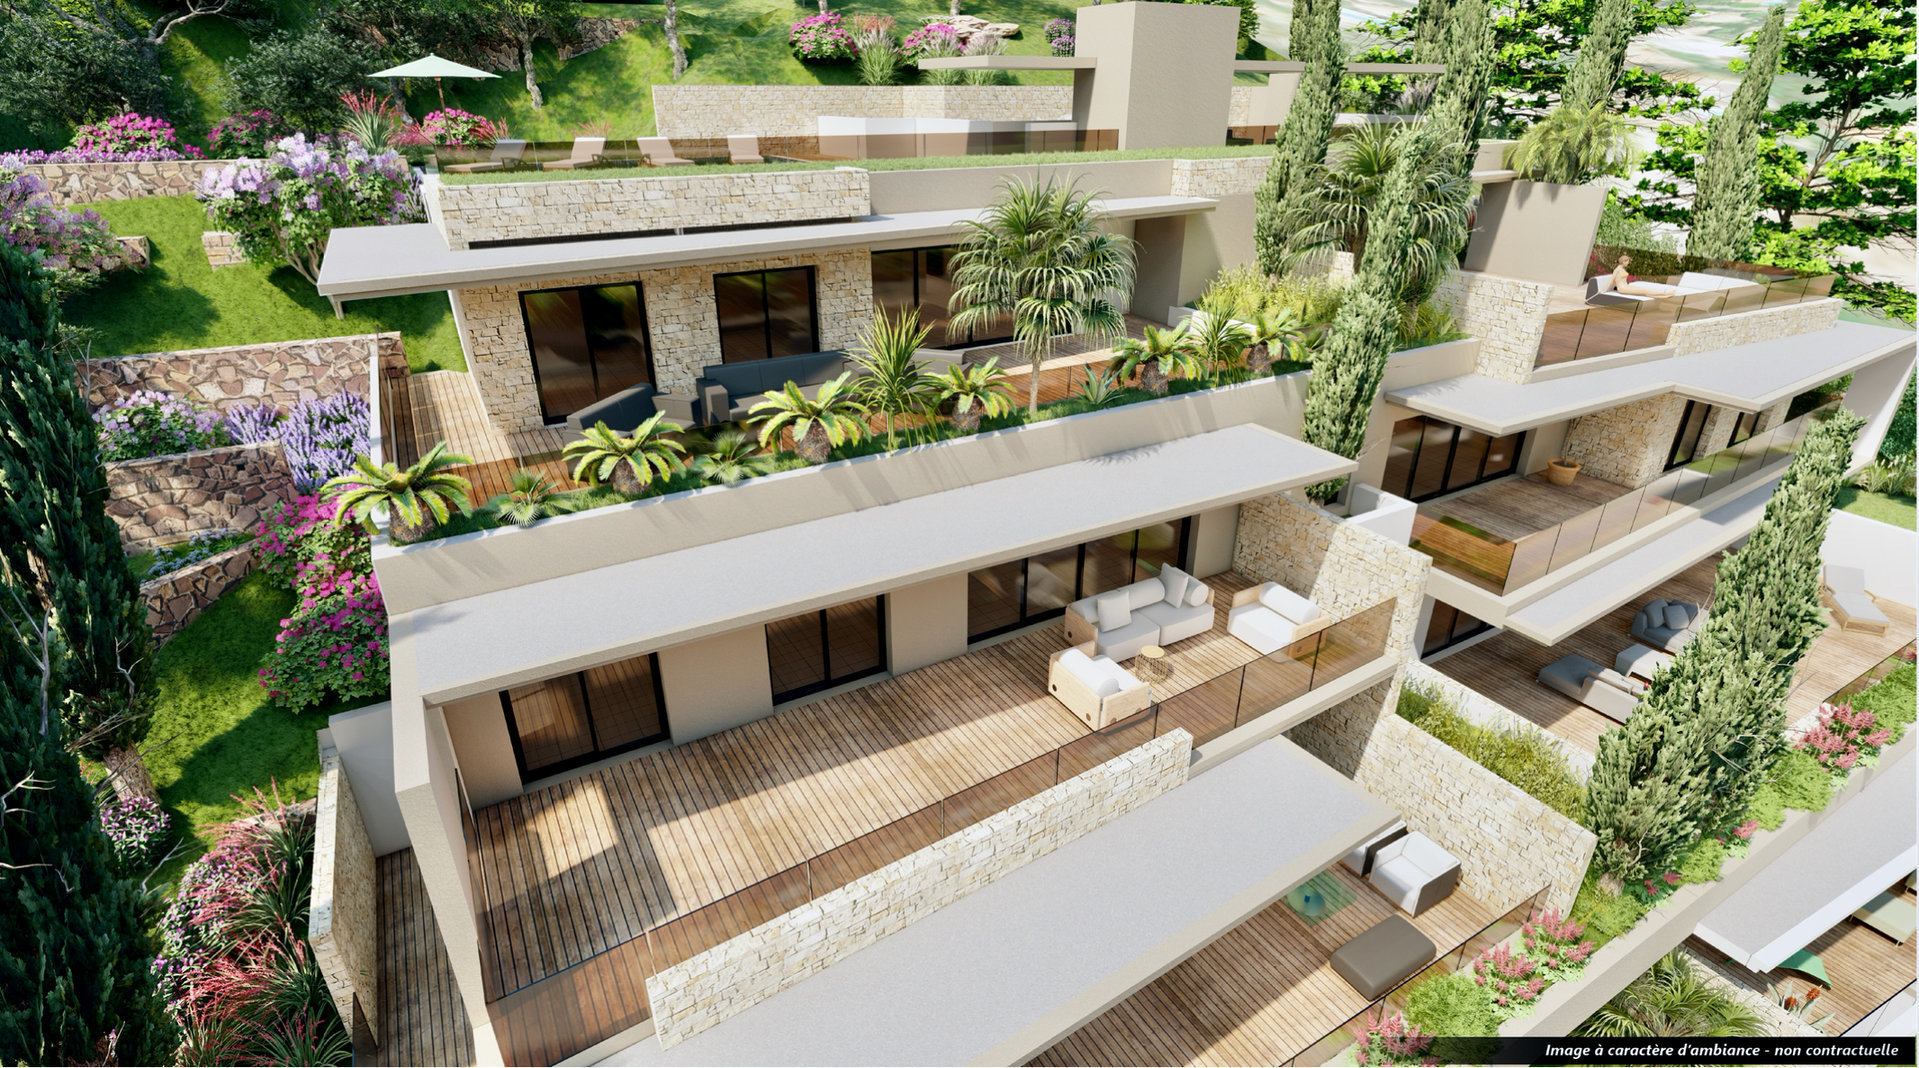 Les Issambres - 96,5 m2 new construction high standing apartment with great sea-view